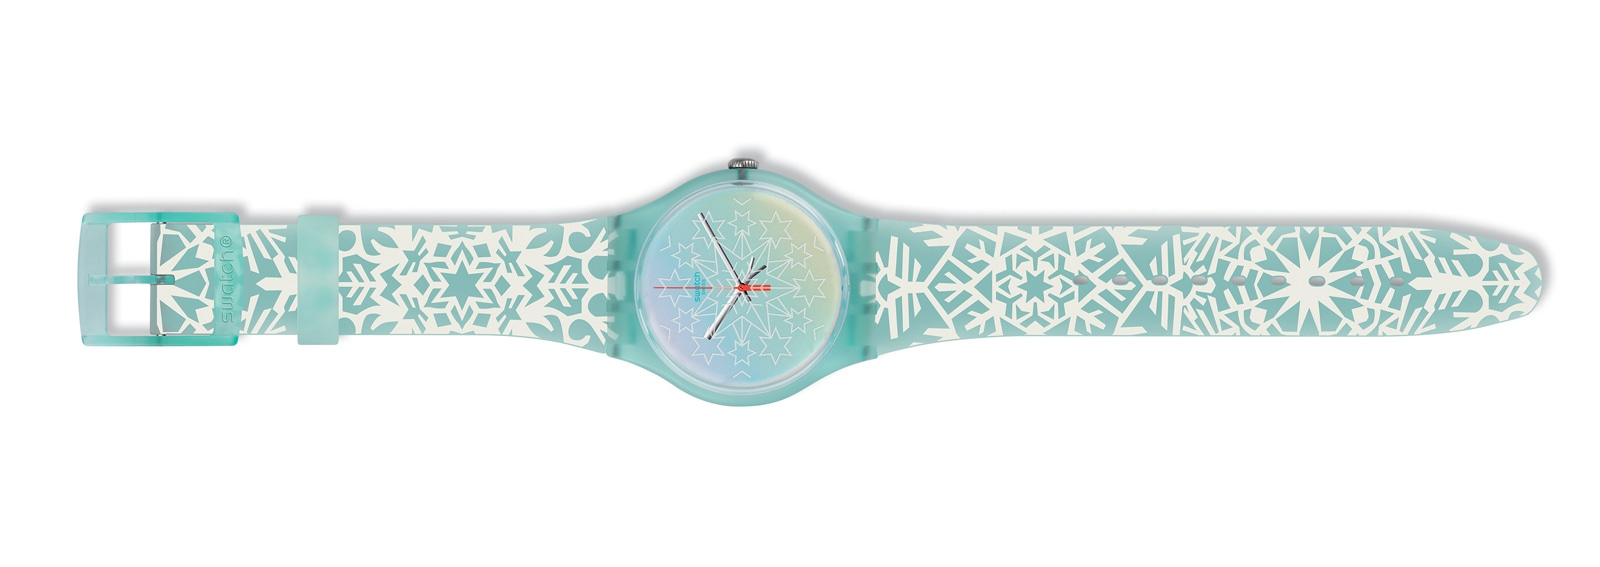 Swatch_orologio-natale-2016